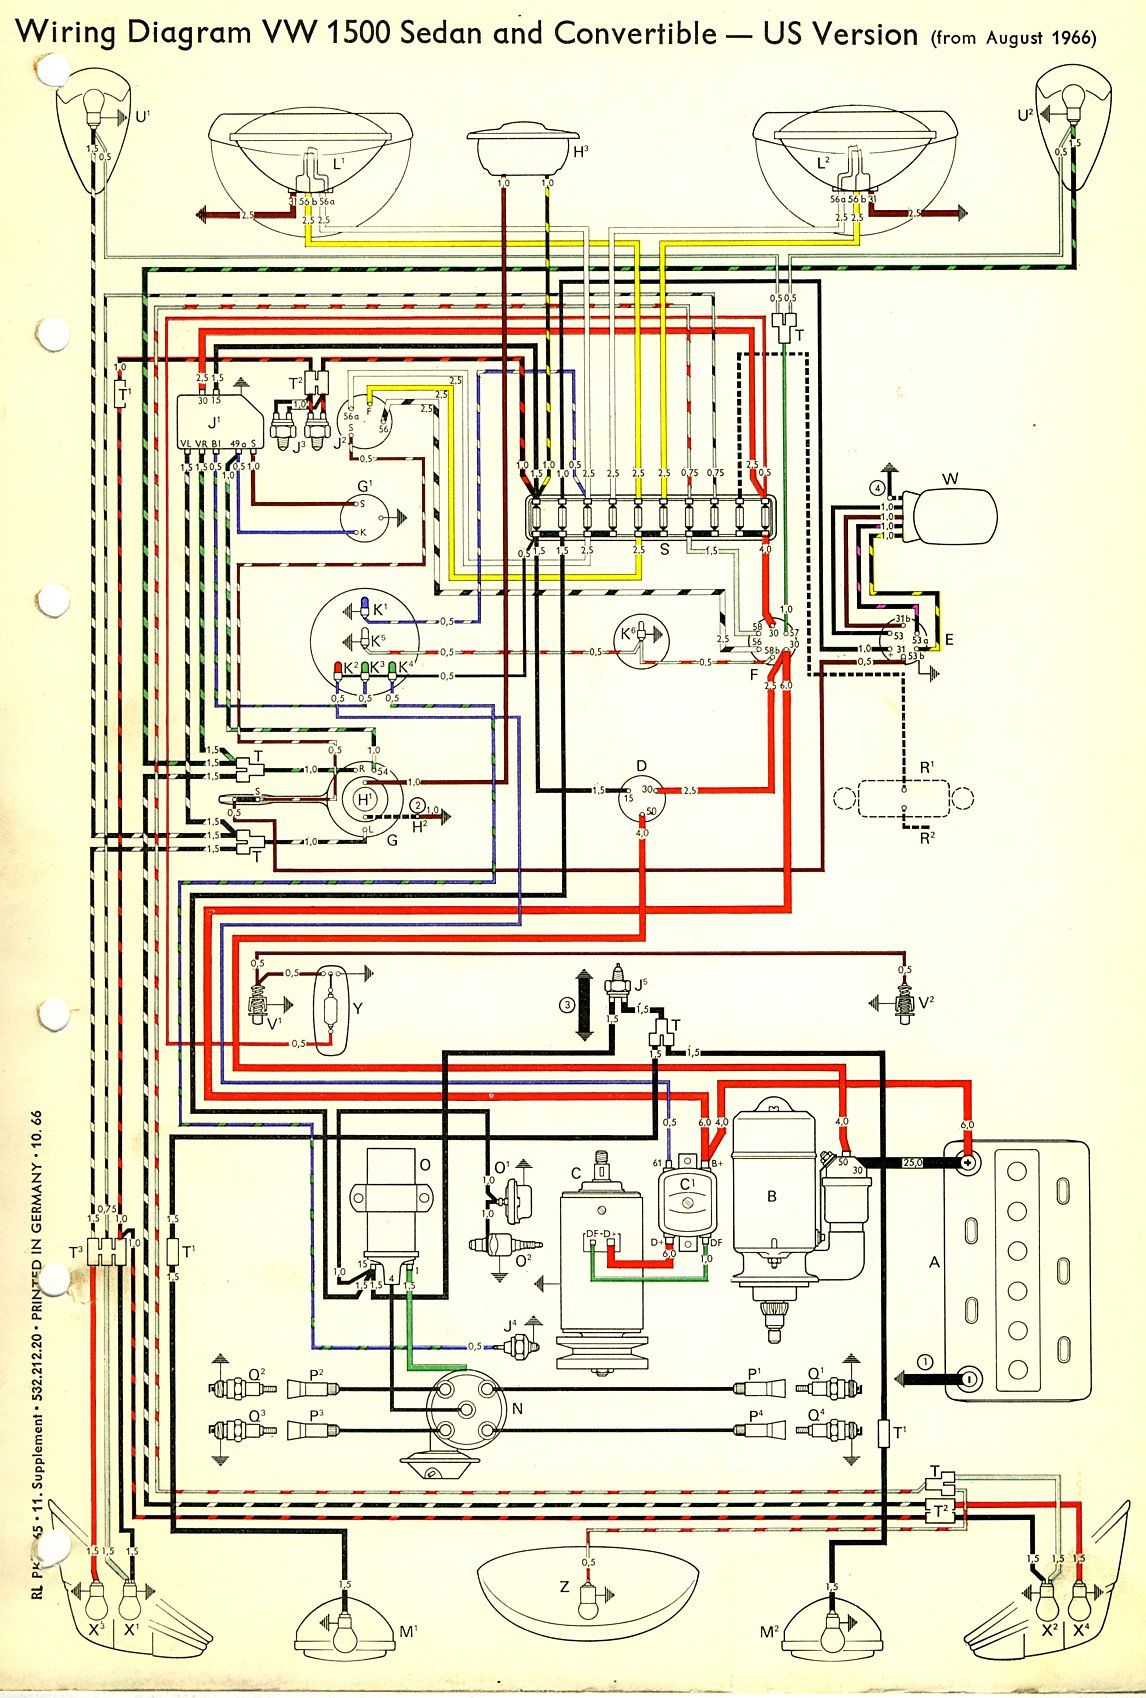 1adf990c0efb617c789fdd21338448b0 1967 beetle wiring diagram (usa) thegoldenbug com best 1967 vw 1971 vw bus wiring diagram at crackthecode.co